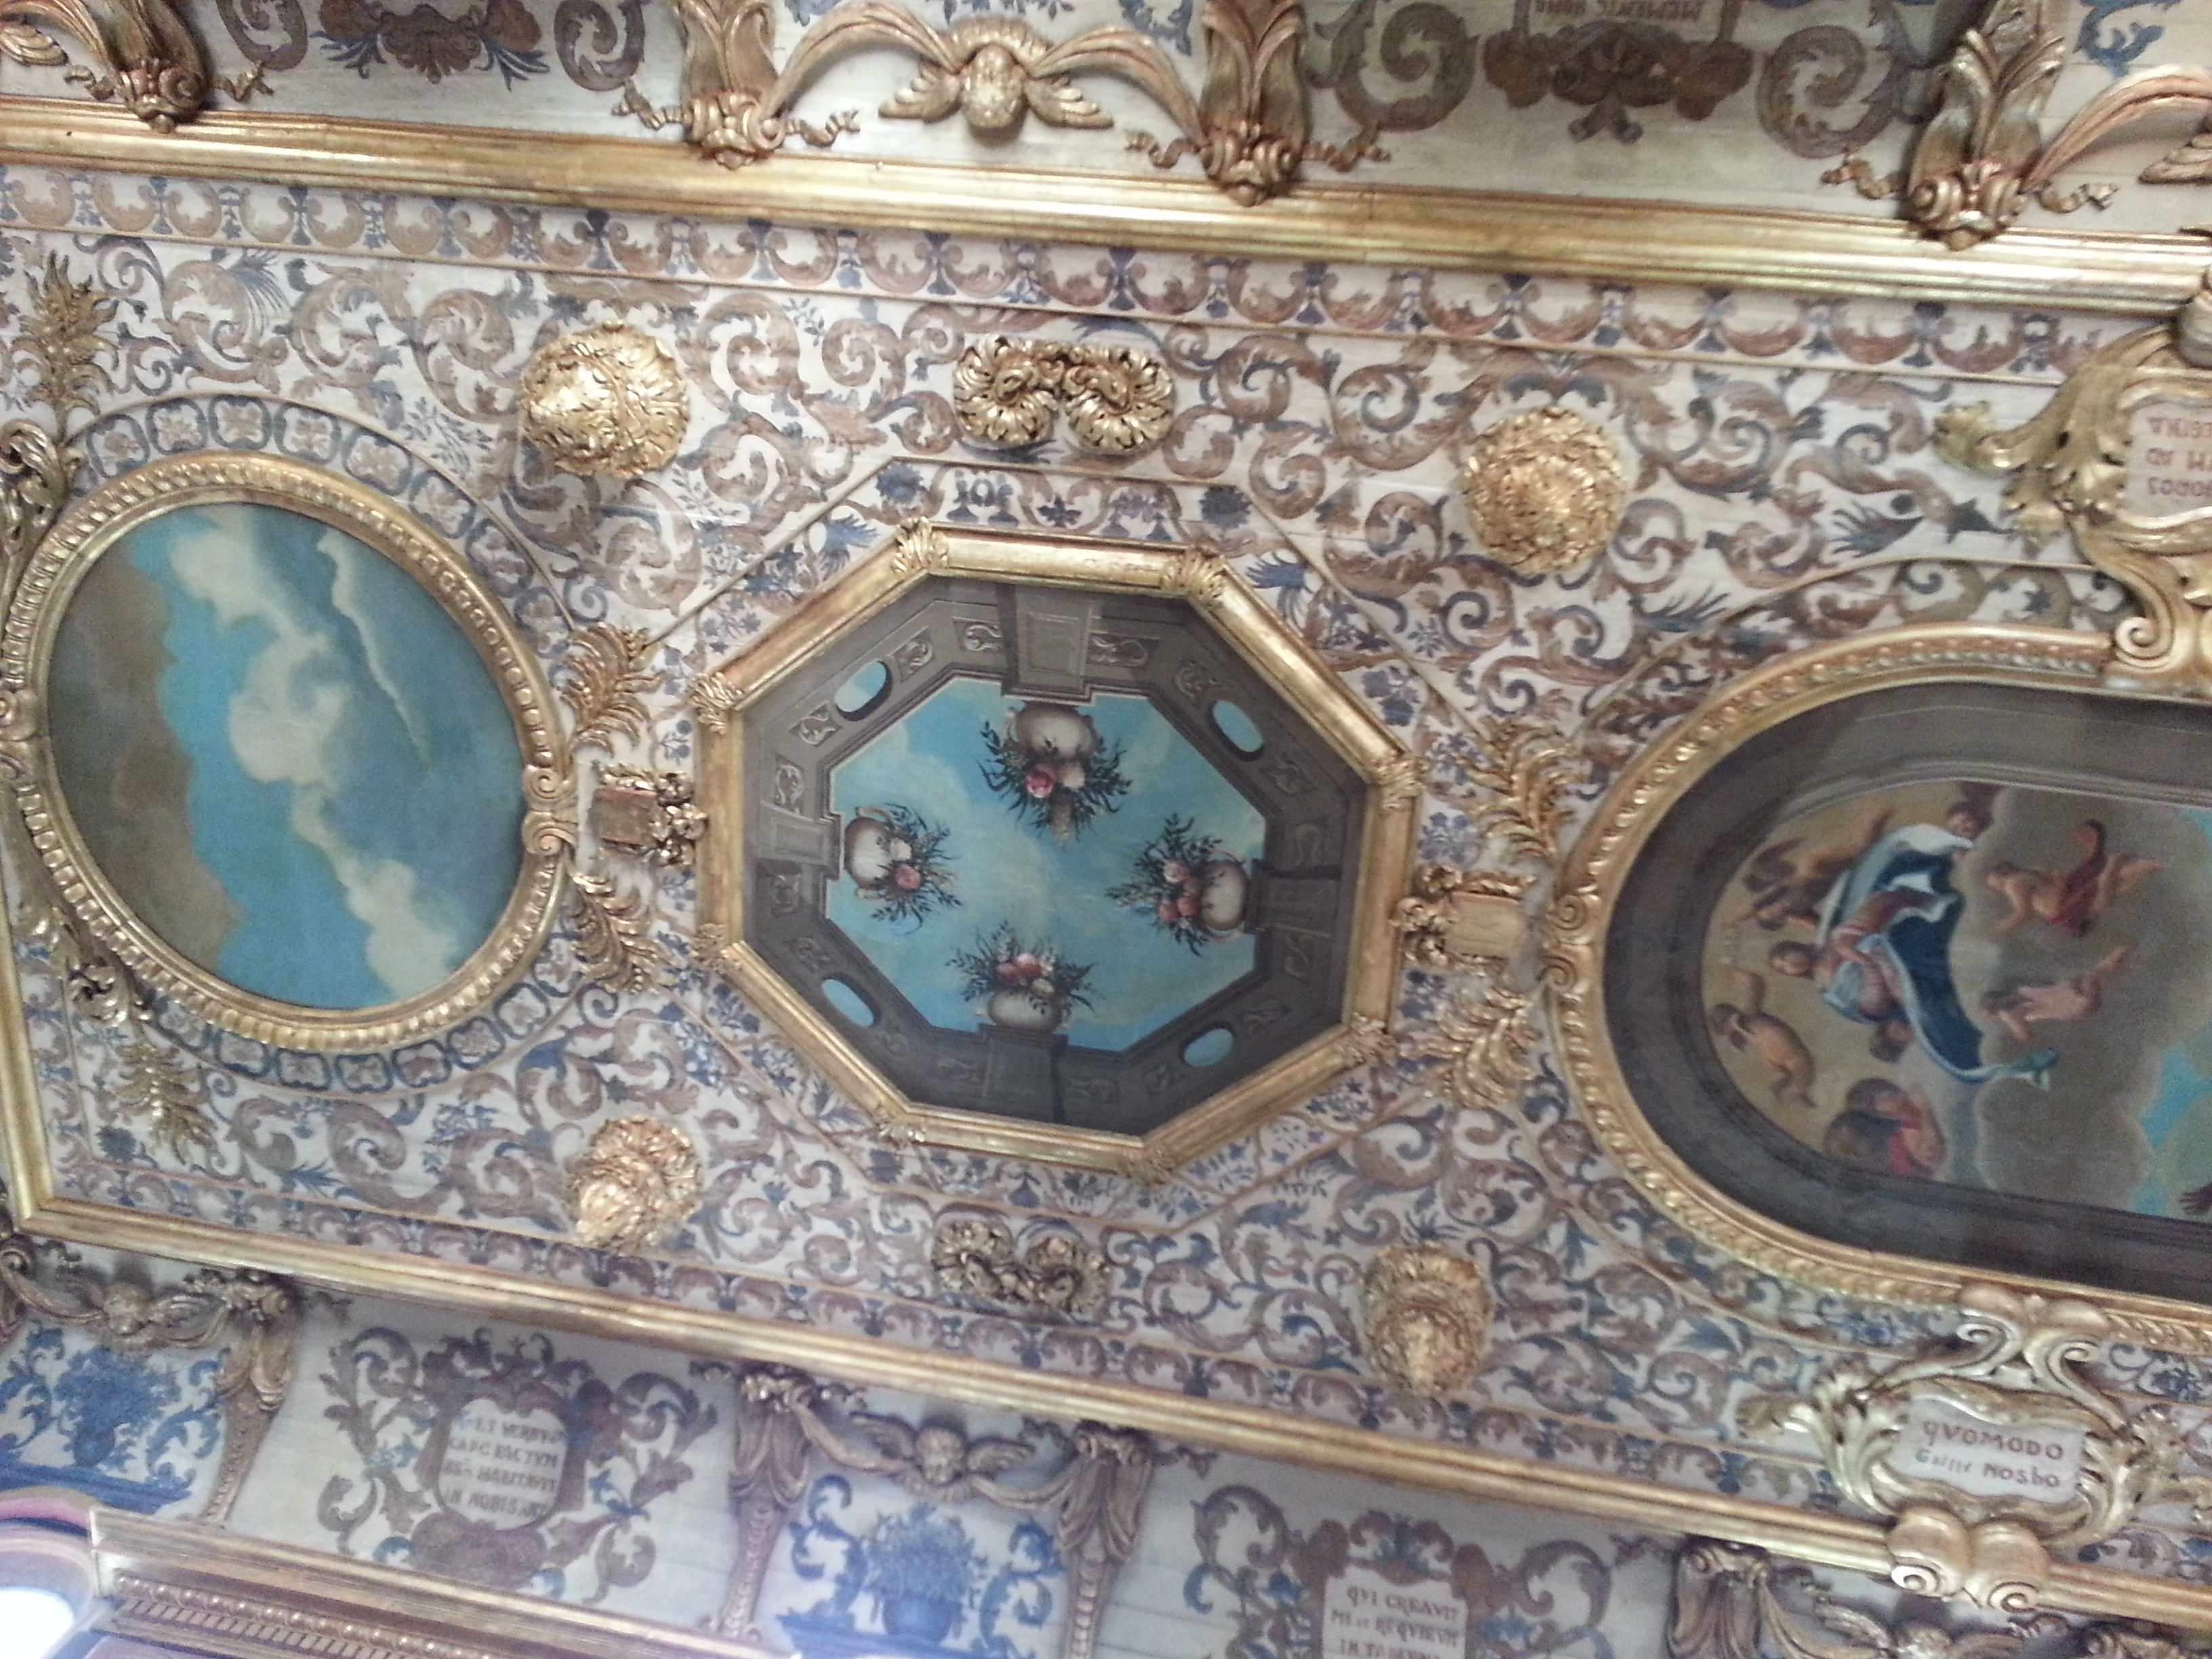 Ceiling of the Annonciade chapel in Martigues